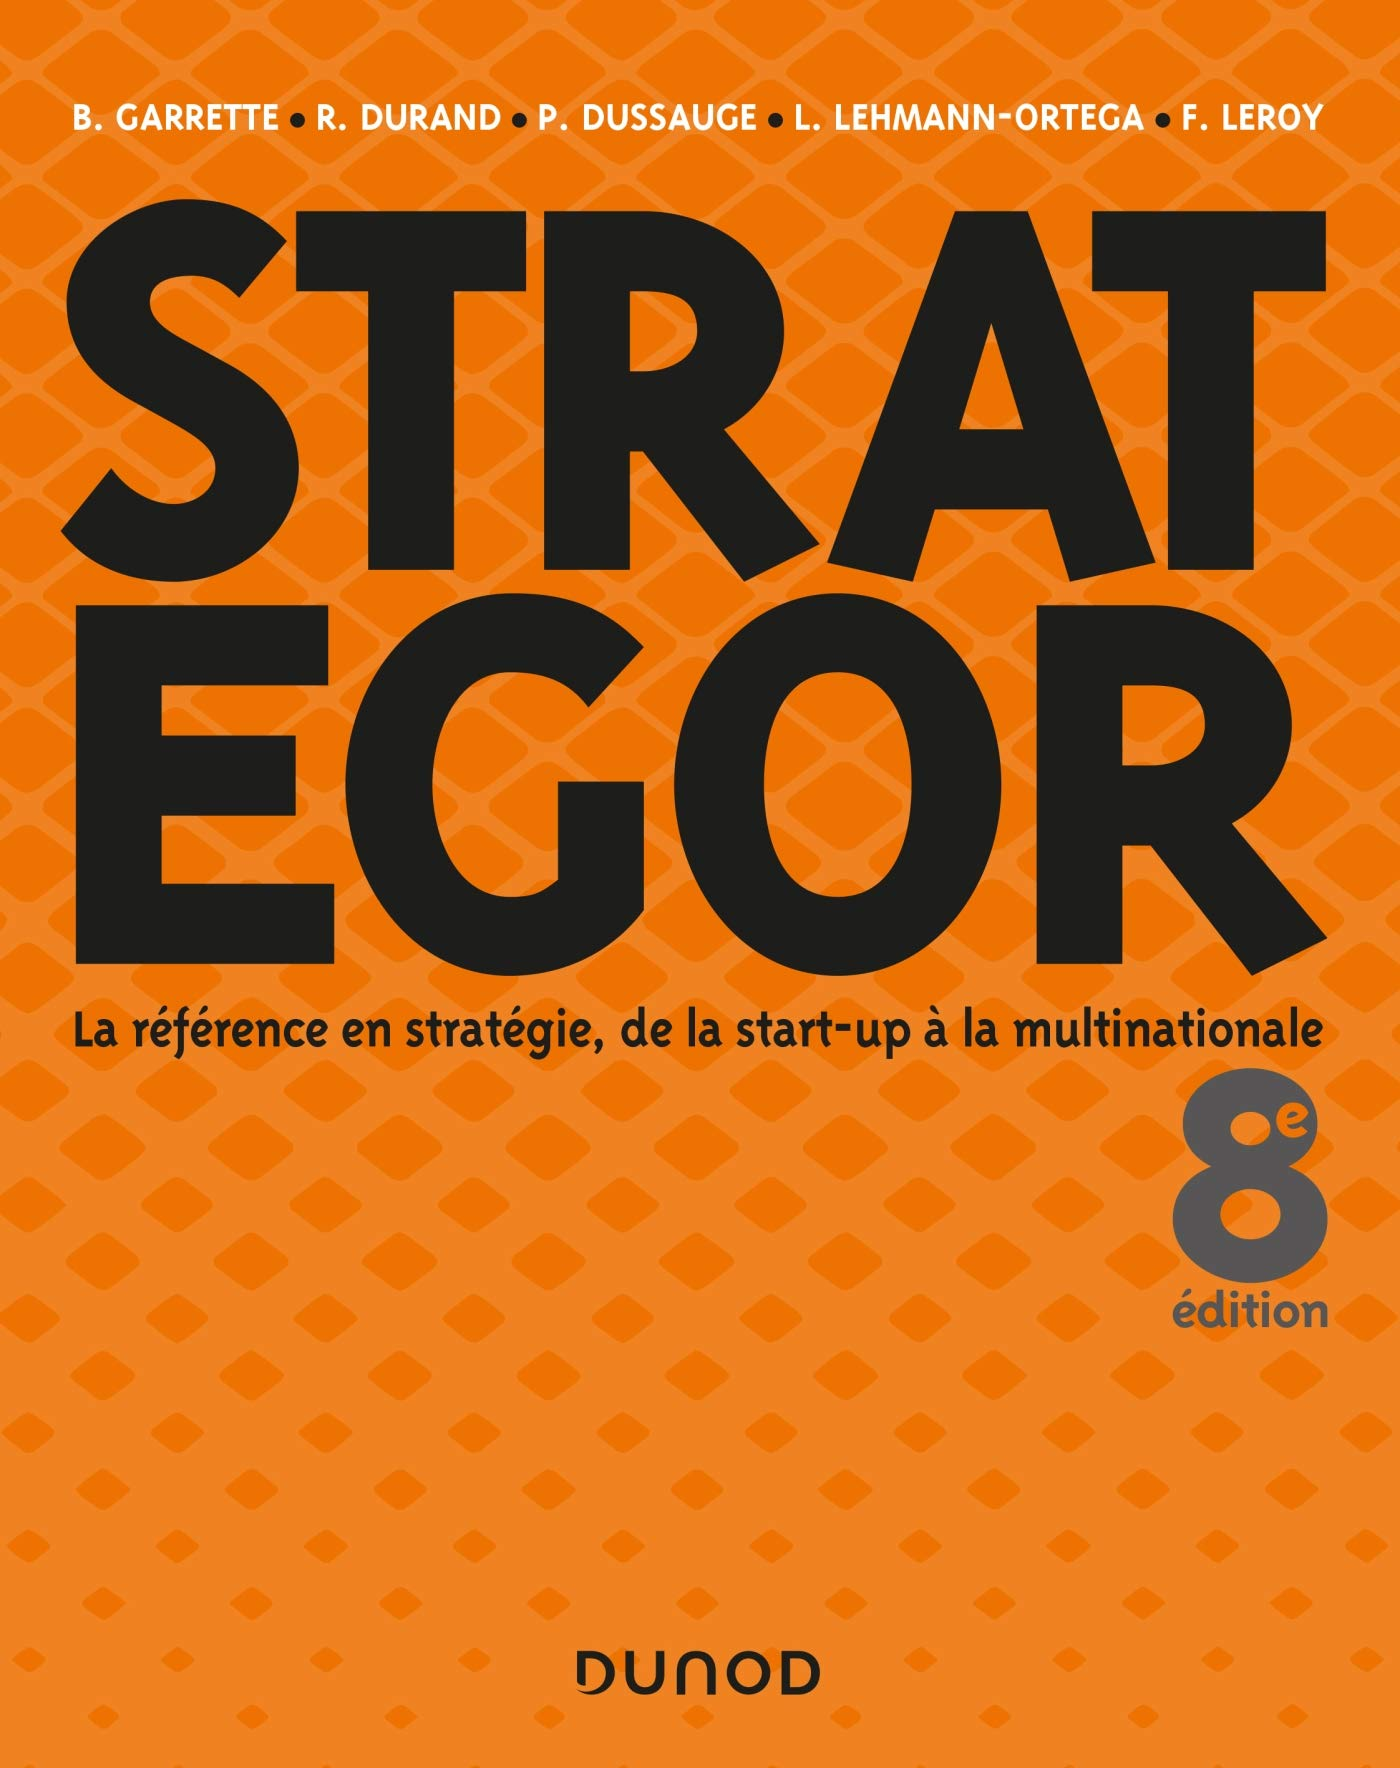 Strategor   8e éd.   Toute la stratégie de la start up à la multinationale